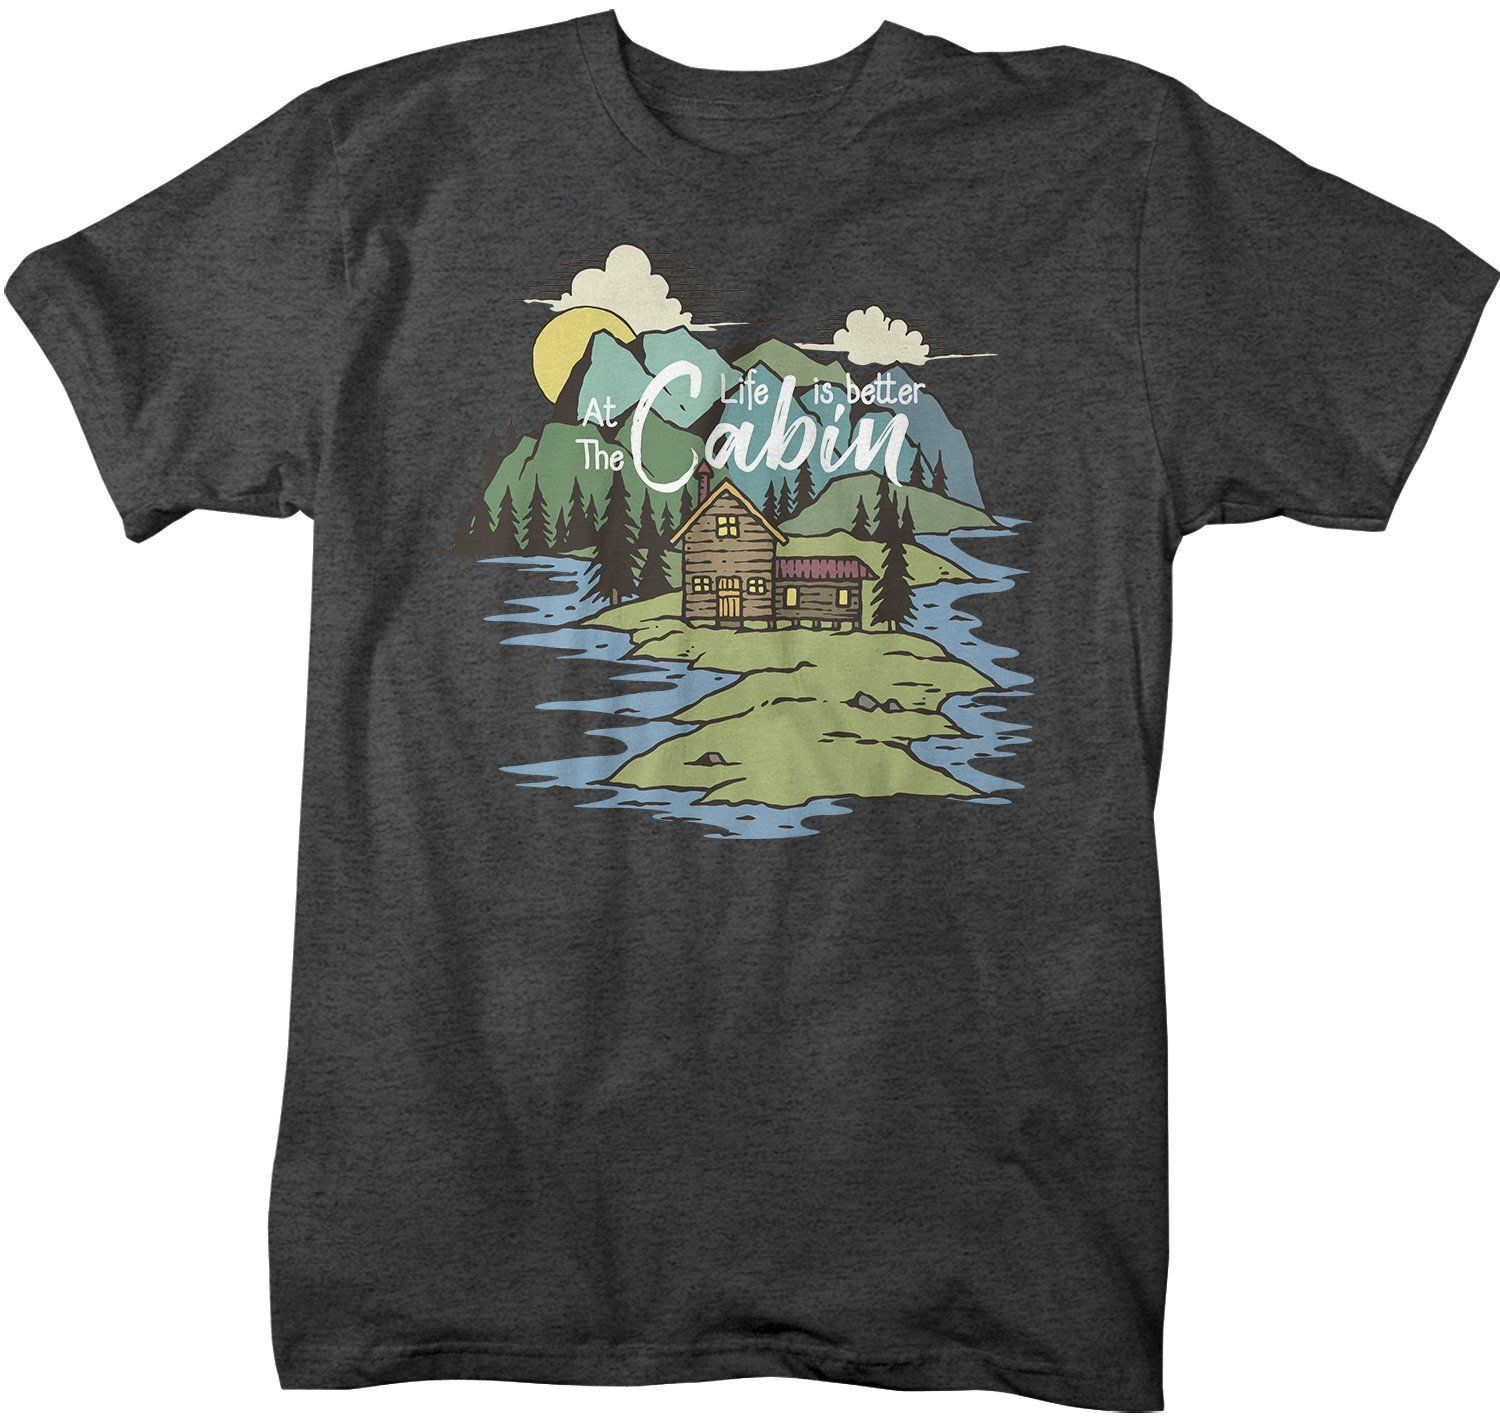 Men's Nature T-Shirt Life Is Better At Cabin Shirt Wanderlust Tshirt Camping Shirts Illustration Shirt – ESTAMPAS